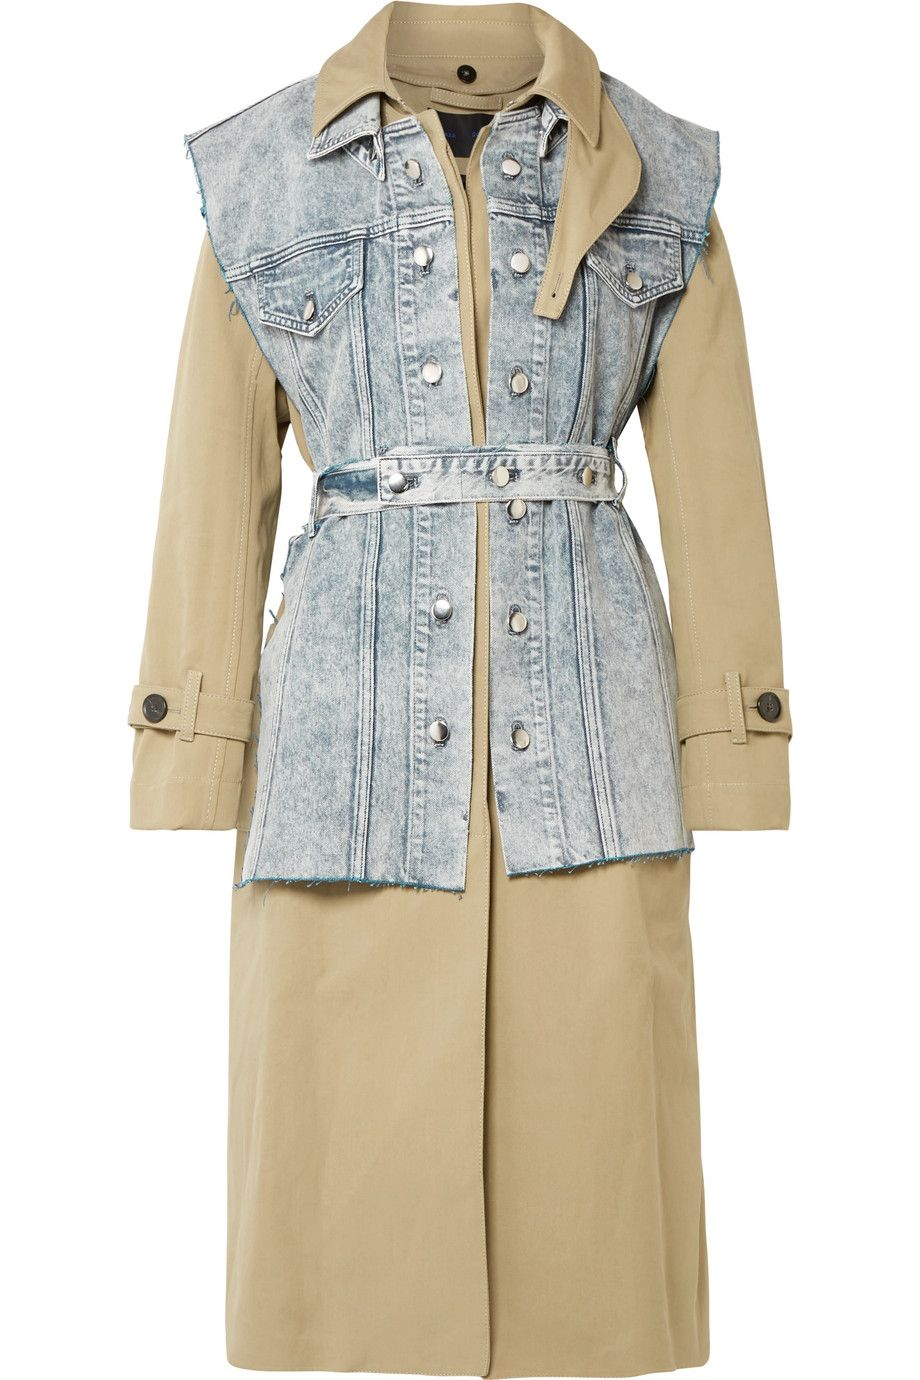 proenza-schouler-convertible-cotton-gabardine-and-denim-trench-coat